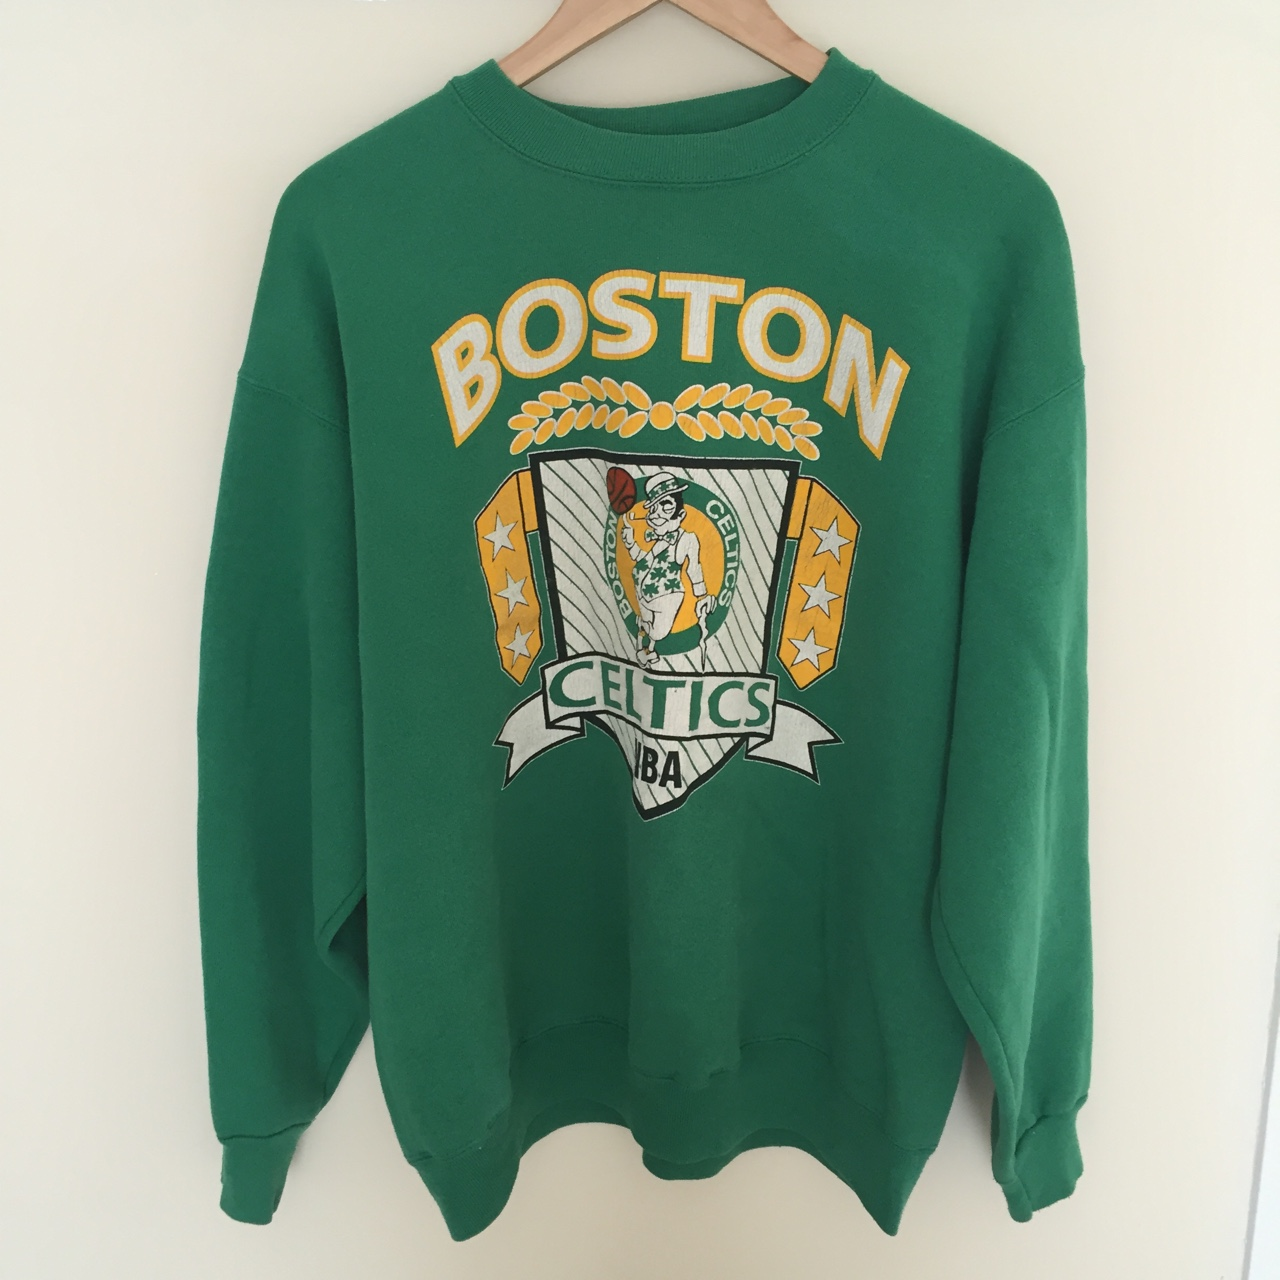 half off 05f11 a8d4d Vintage NBA Boston Celtics sweatshirt. Size medium... - Depop